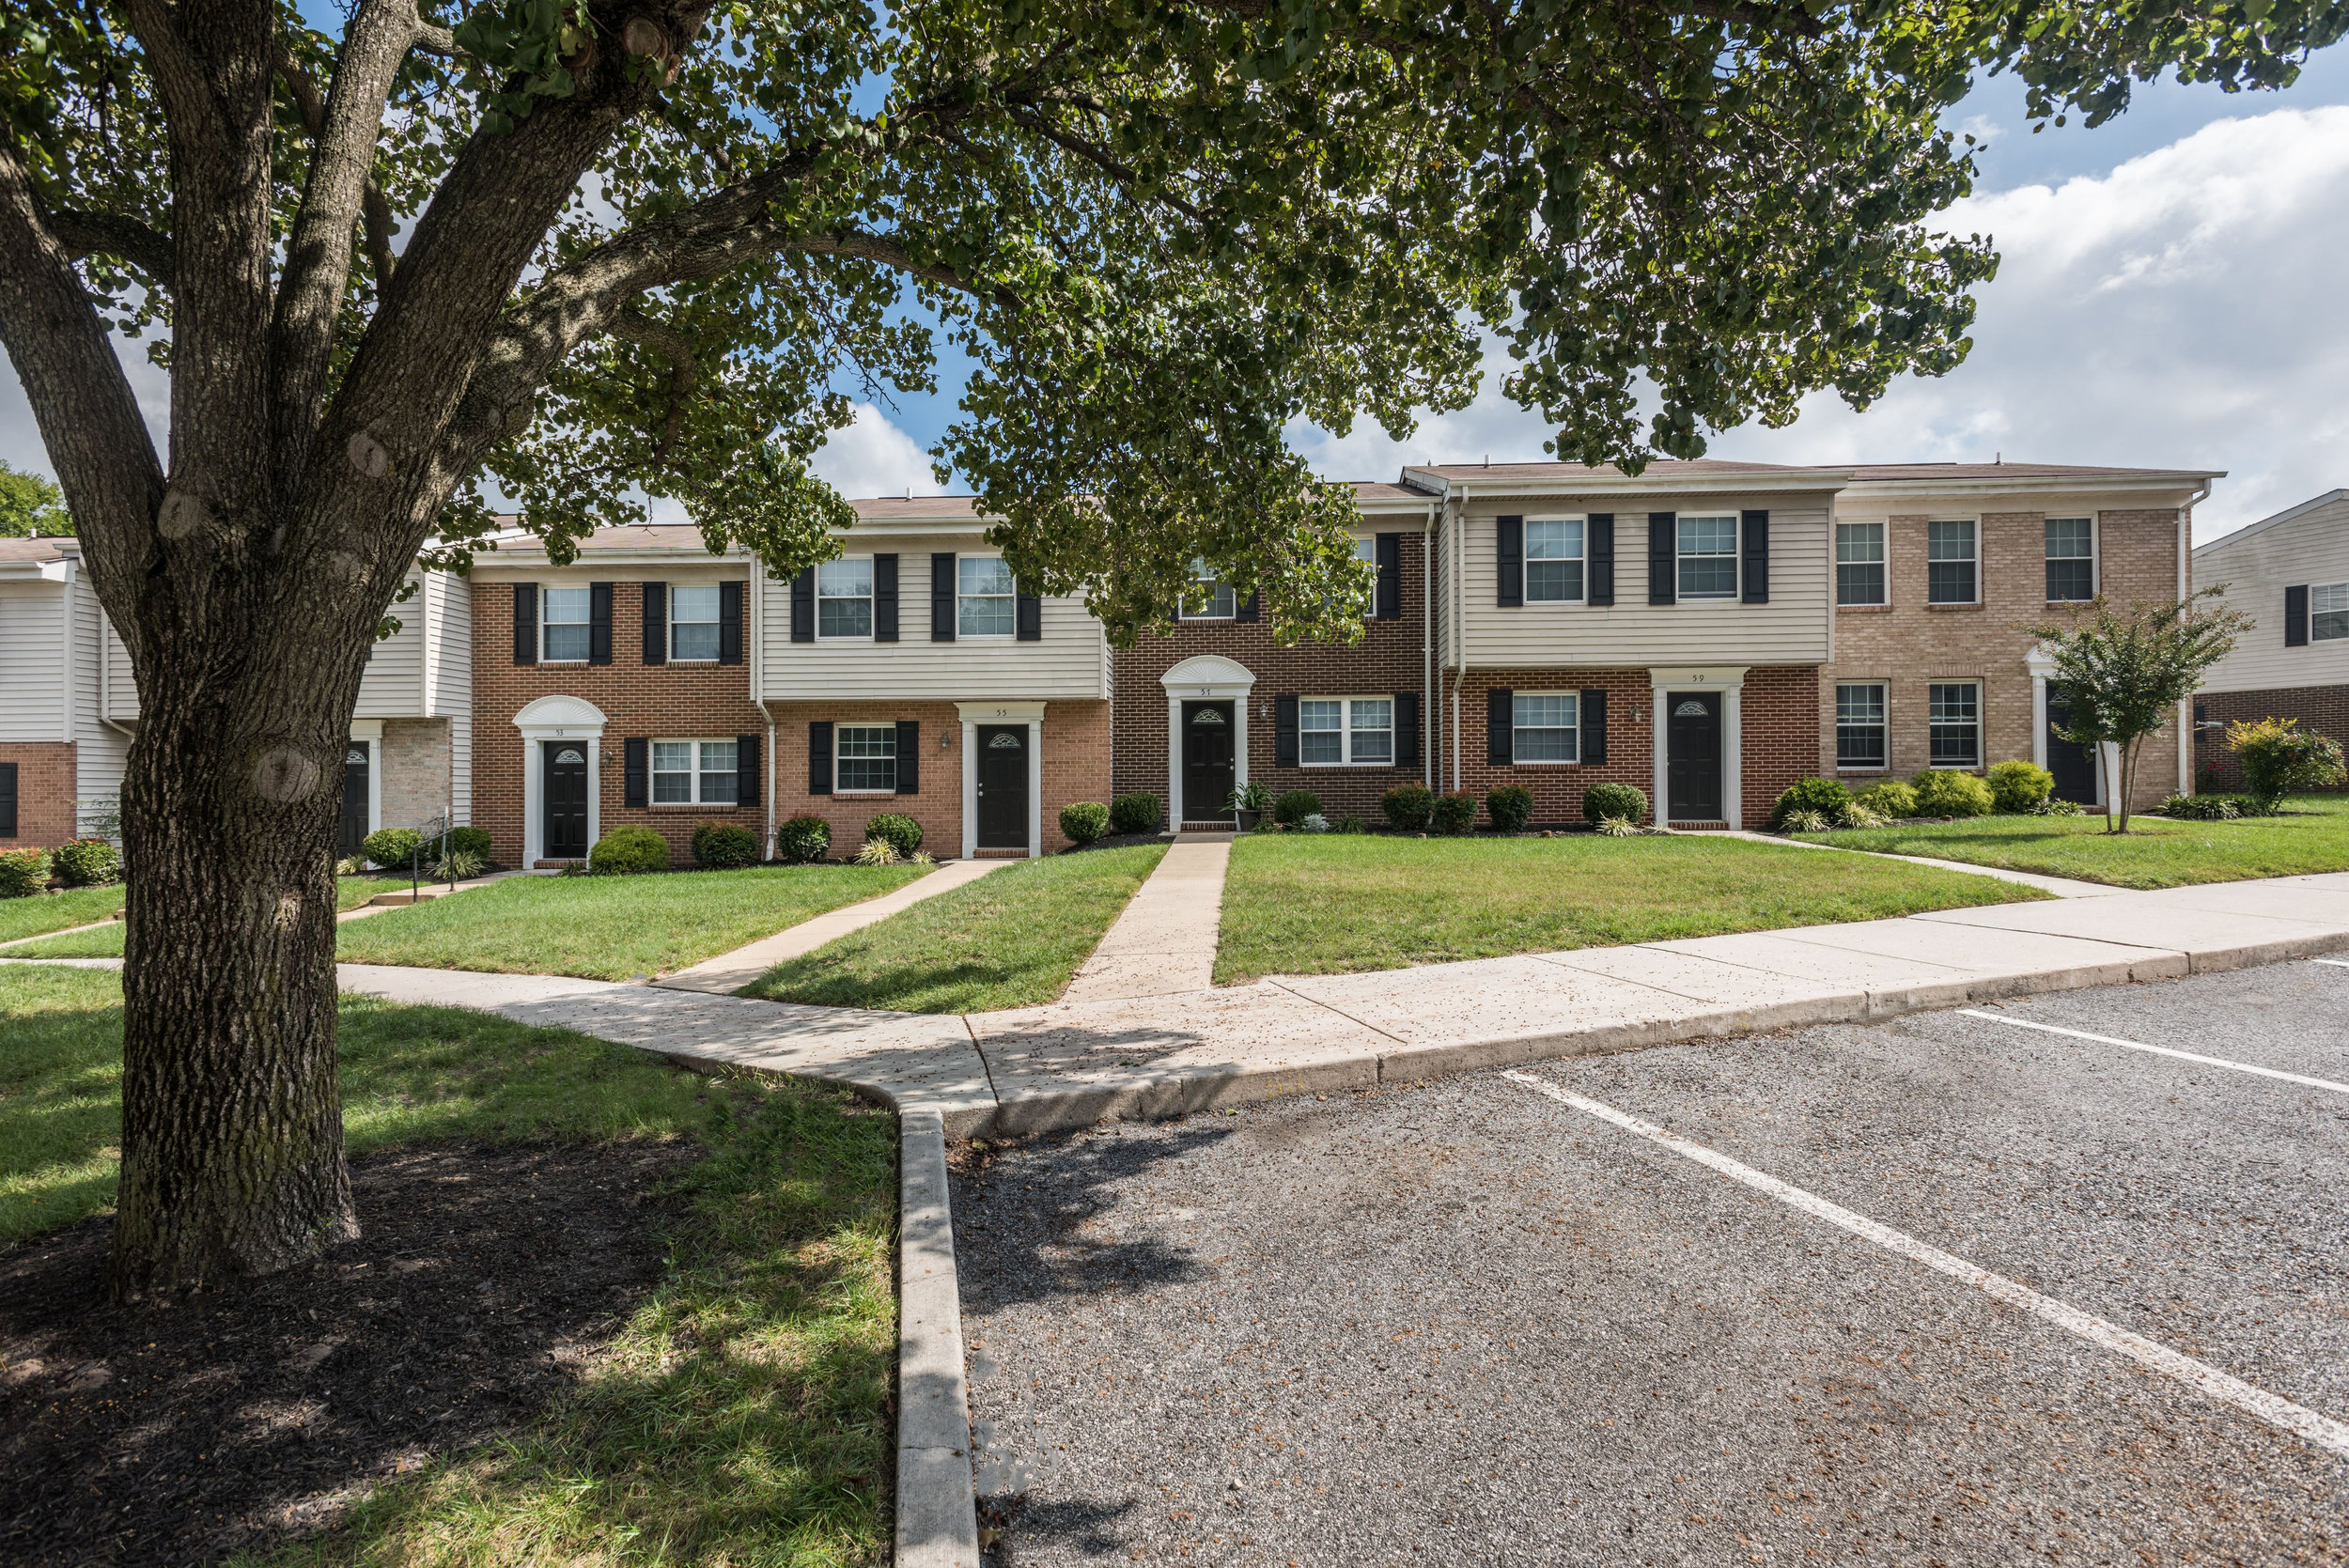 Olde Forge Rental Townhomes in Perry Hall, MD